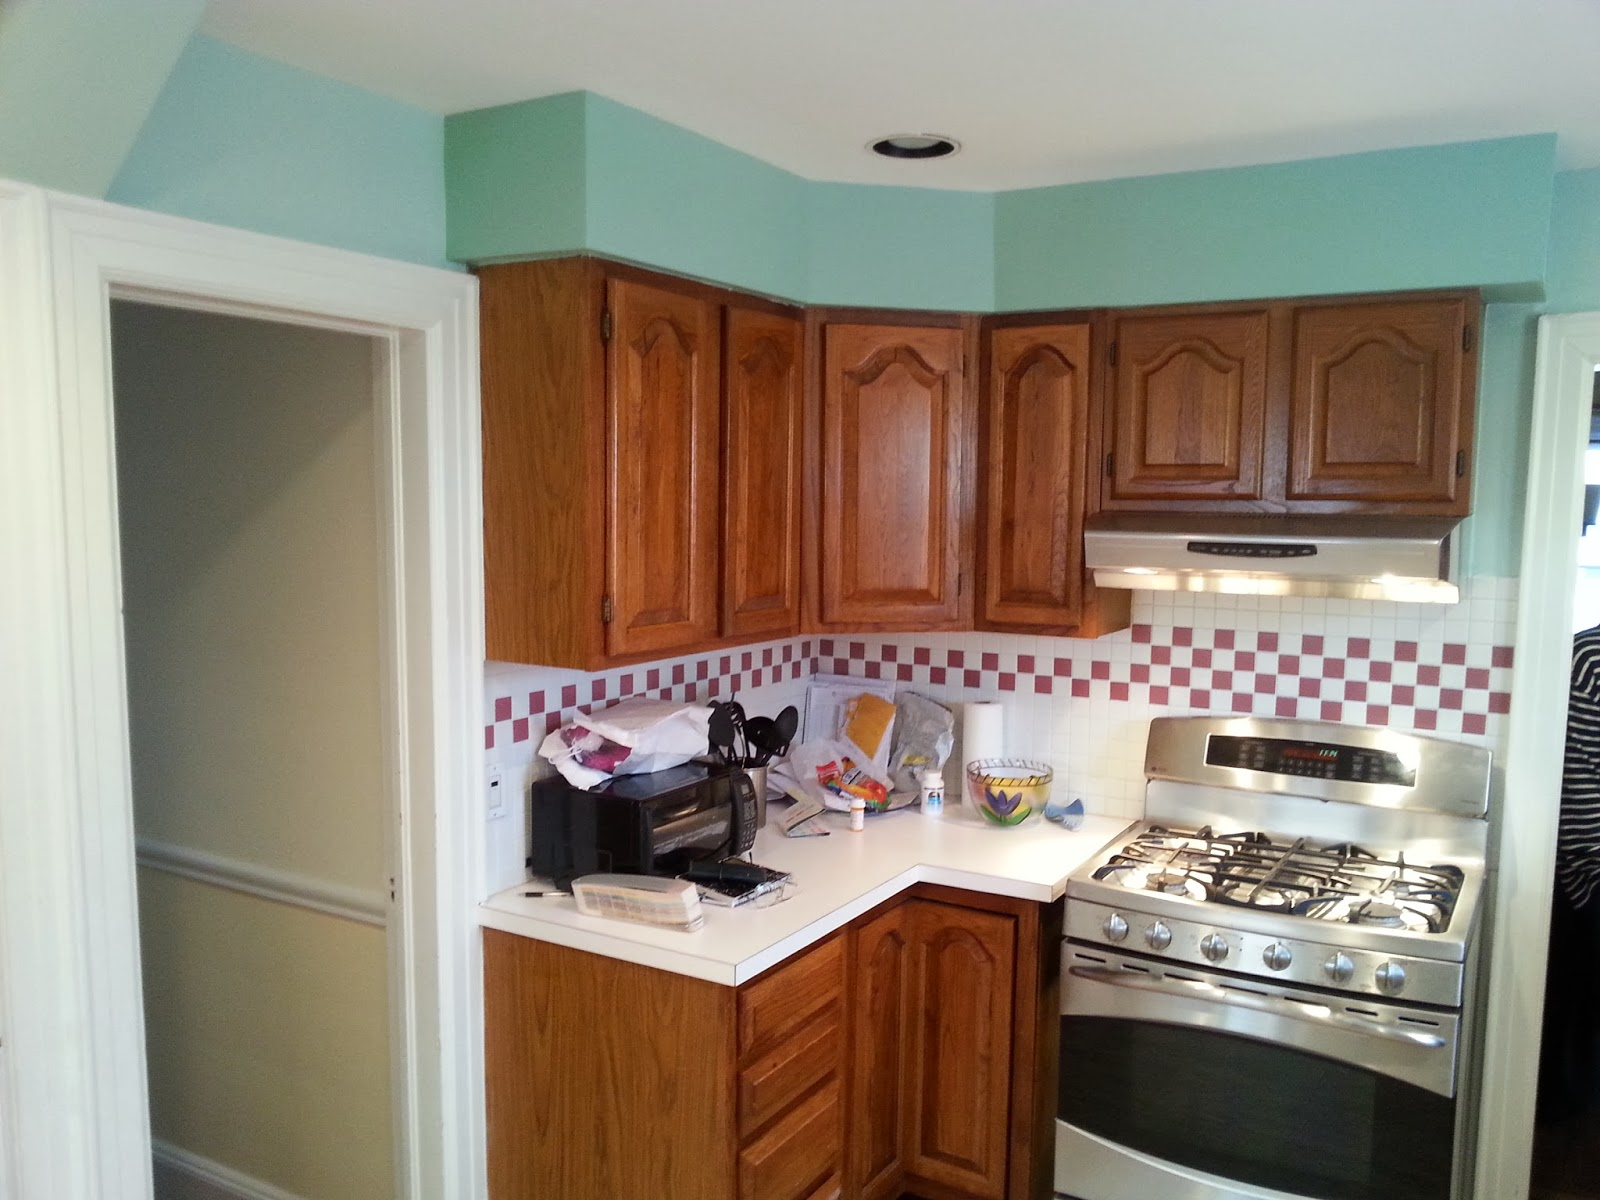 kitchen cabinets refinished refurbished kitchen cabinets The cabinets installed by the previous owner were oak with a dark stain Time had taken its toll The first step was to use a chemical de glosser to remove